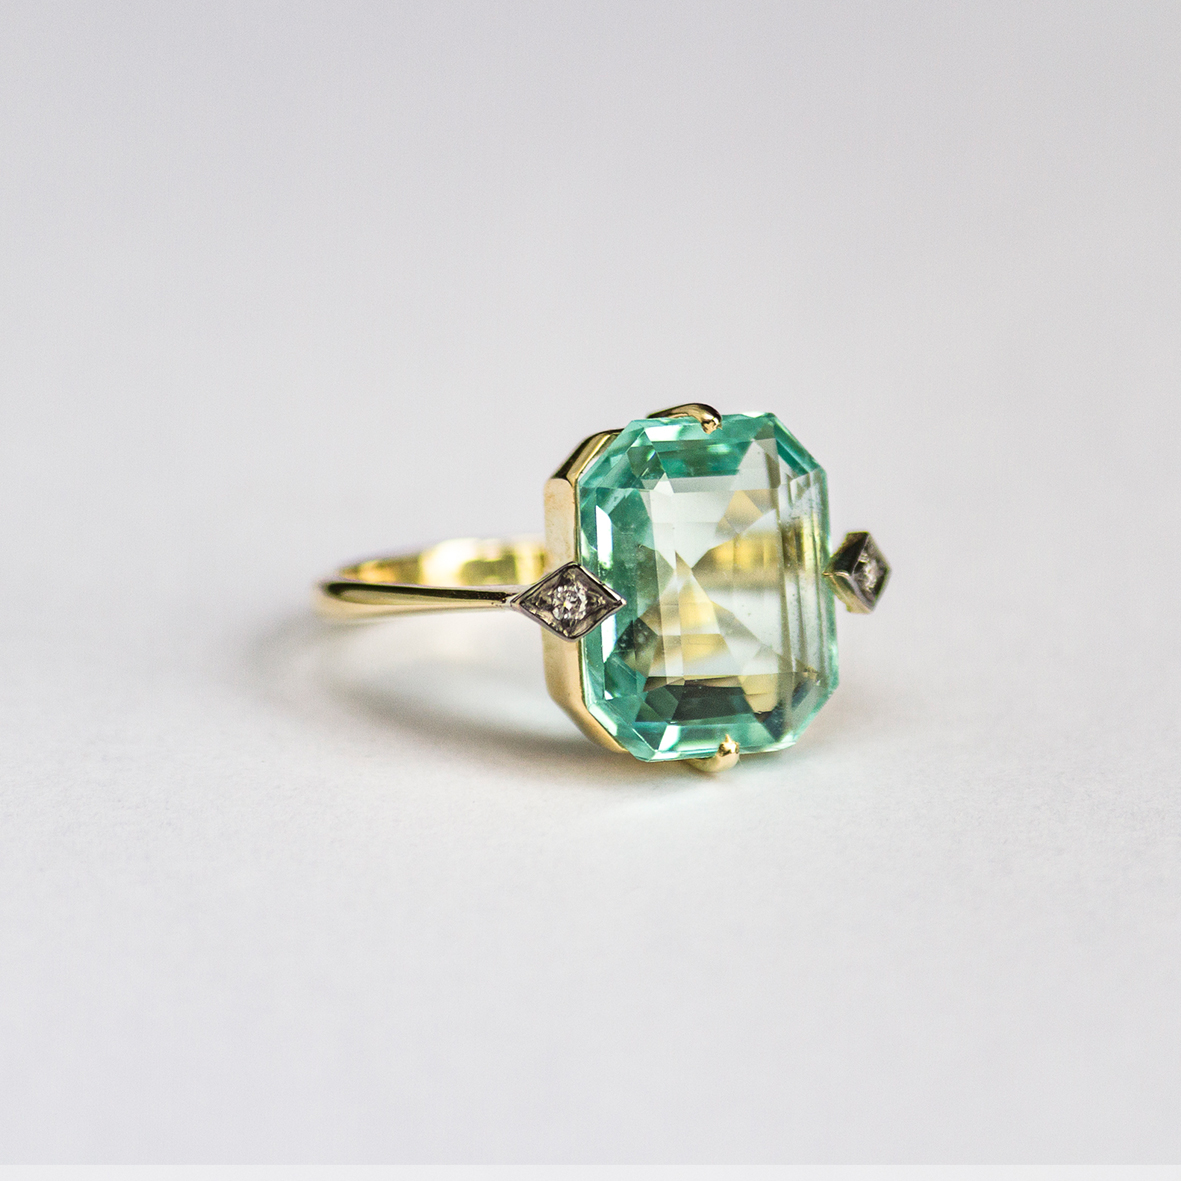 1. OONA_gems of ceylon_ficha2_green aquamarine ring